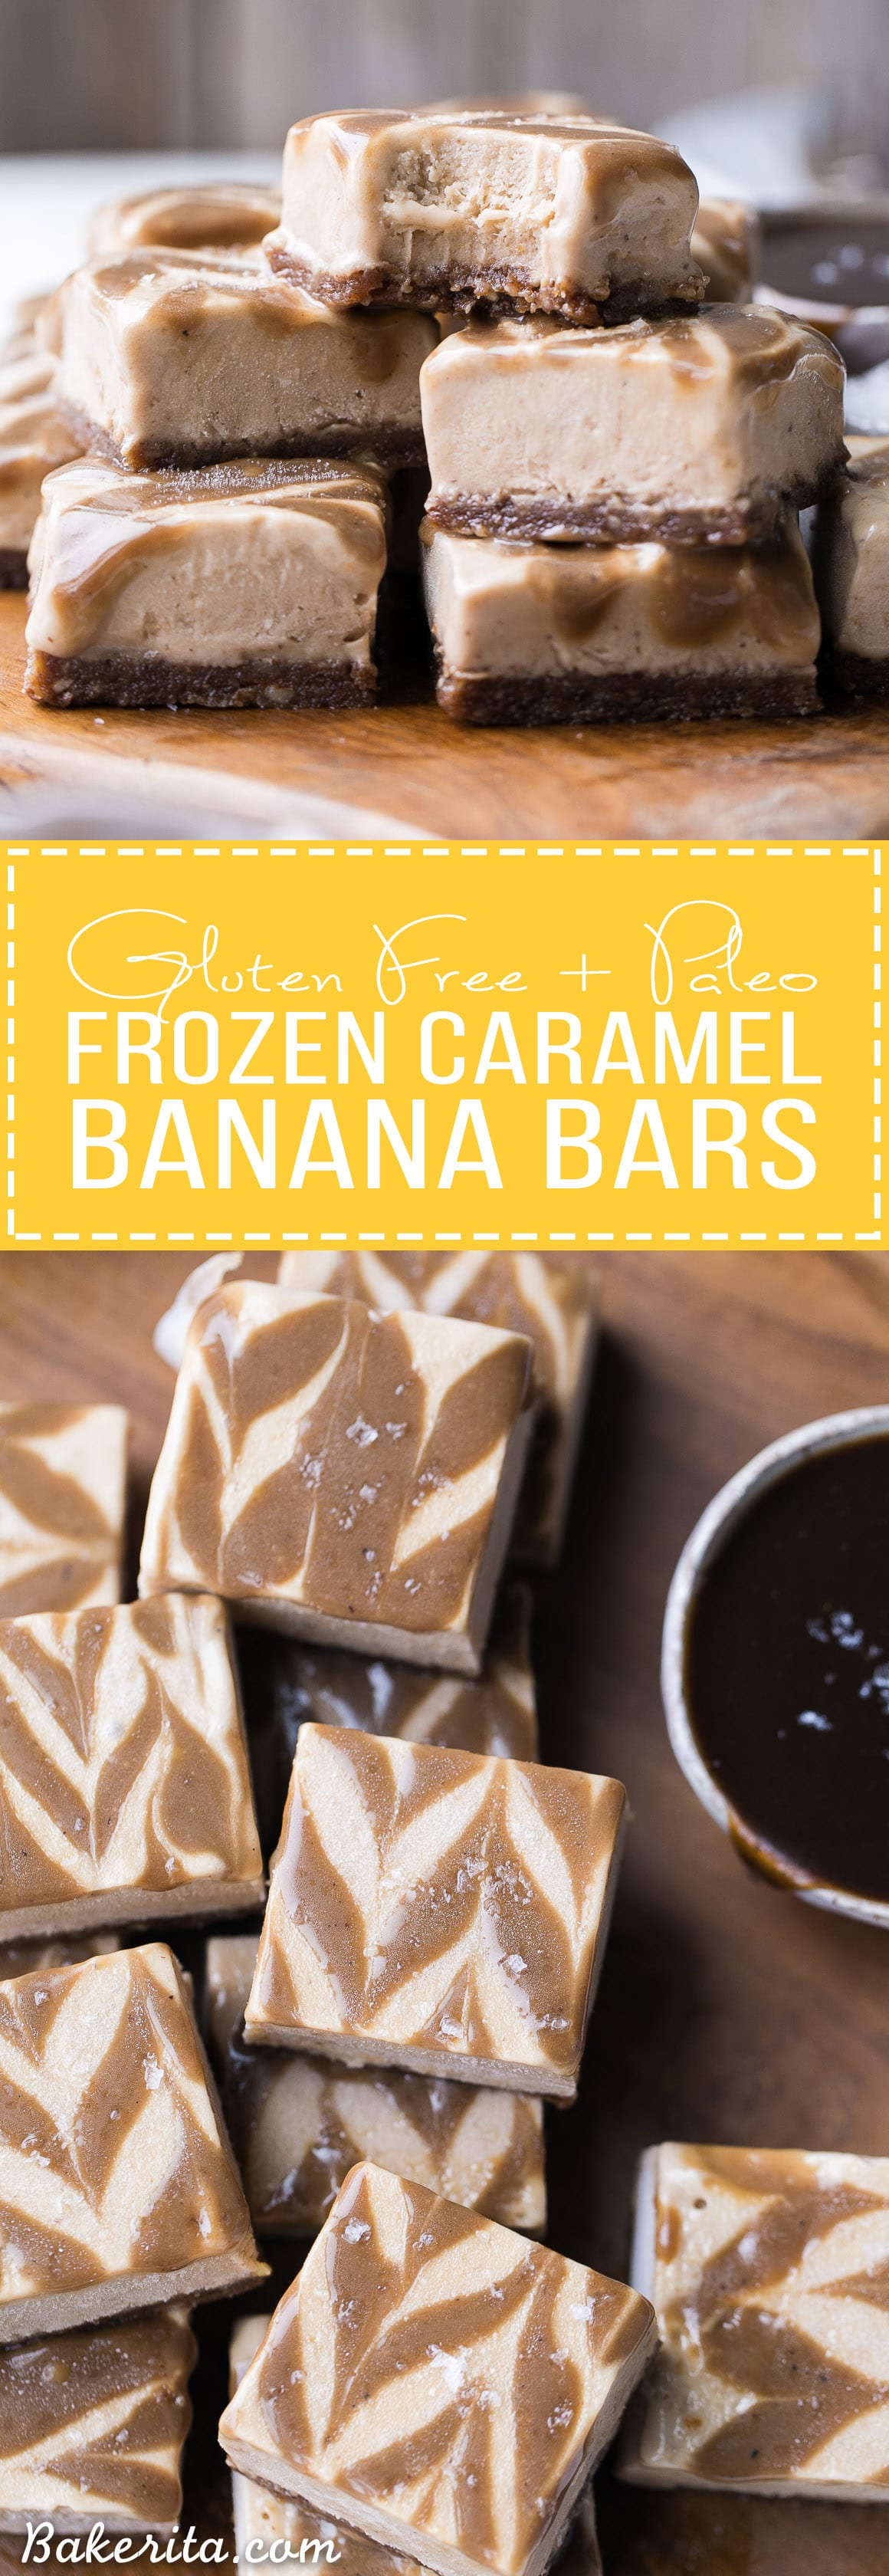 These Frozen Caramel Banana Bars are easy to make in a blender or food processor, and they're super creamy and refreshing. These gluten-free and paleo bars have a chewy pecan-date crust, topped with banana nice cream and a caramel swirl.